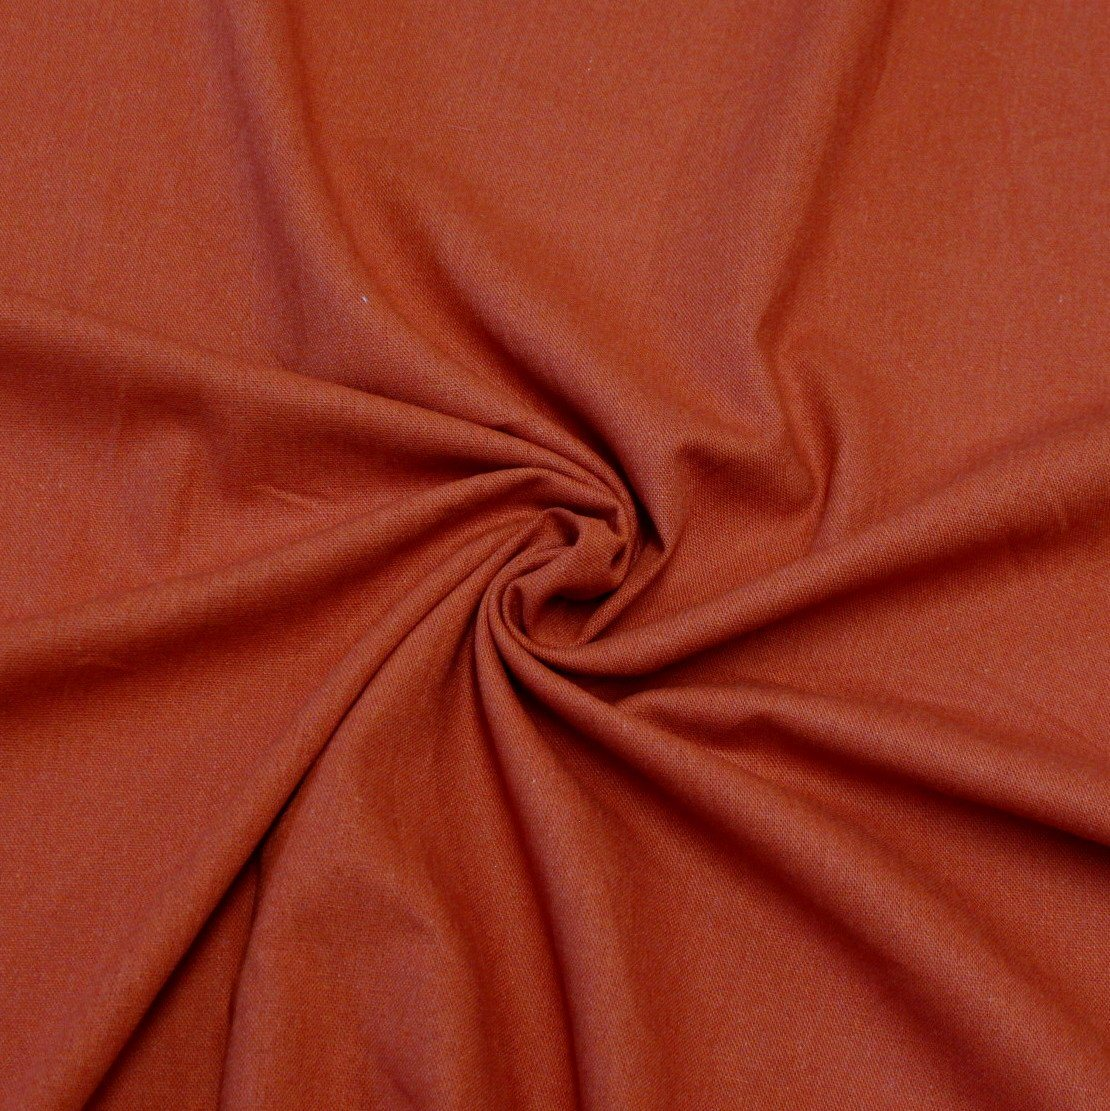 Rust Medium Weight Rayon Linen - Raspberry Creek Fabrics Knit Fabric